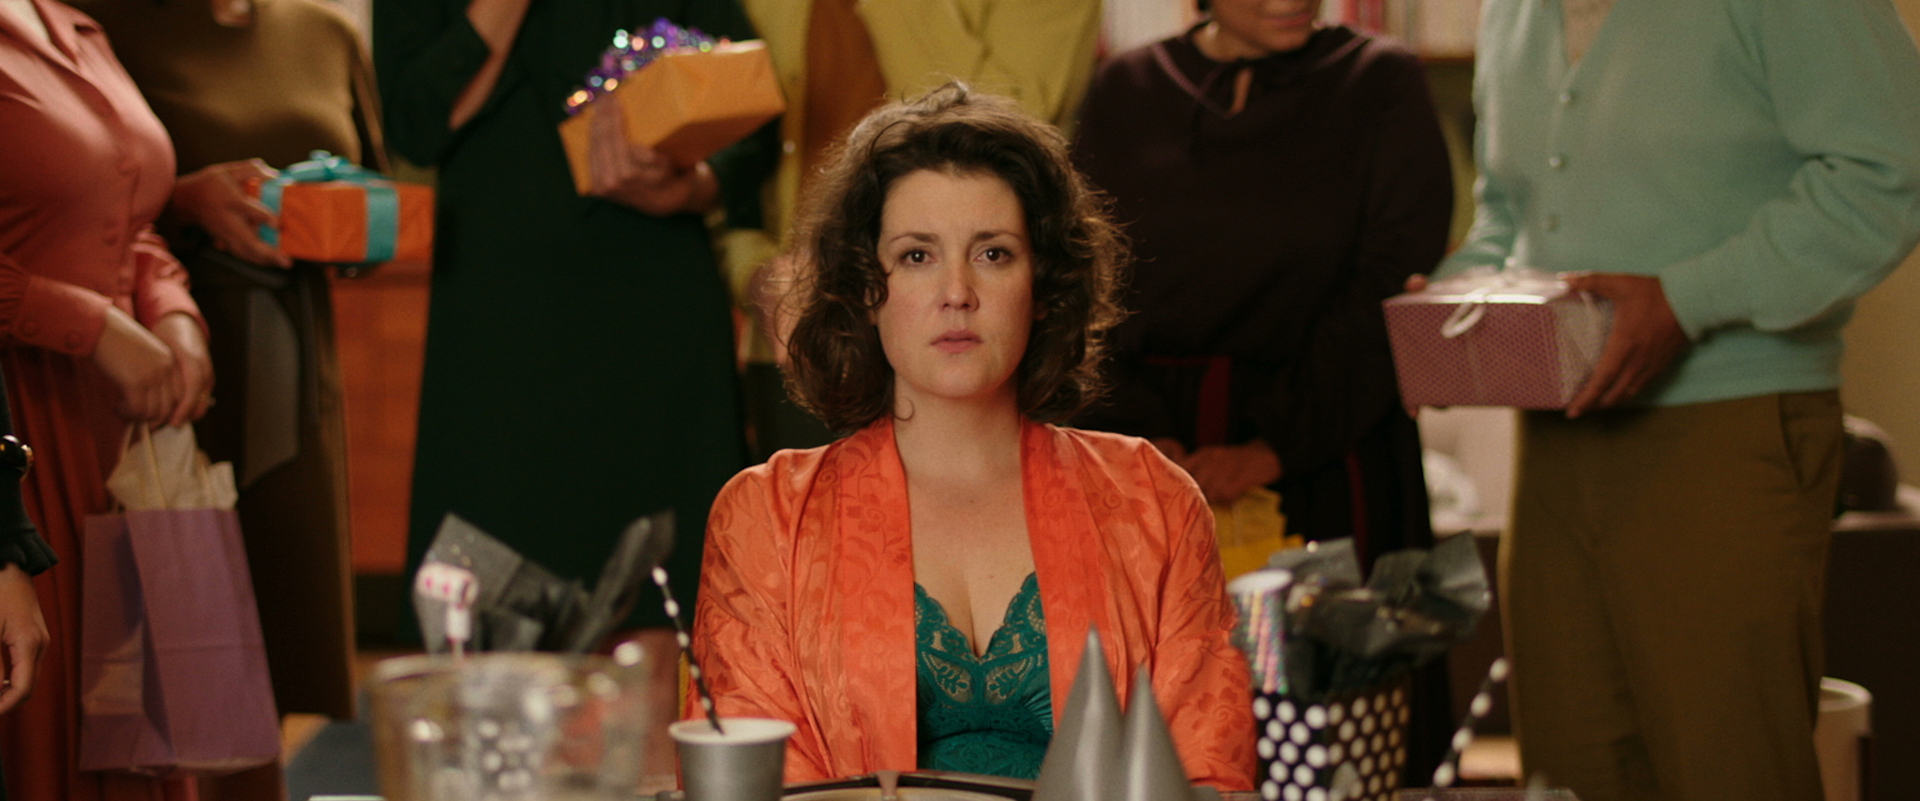 Melanie Lynskey gives a great performance in 'The Birthday Party,' one of the segments of the horror anthology 'XX.' (Courtesy Magnet Releasing.)